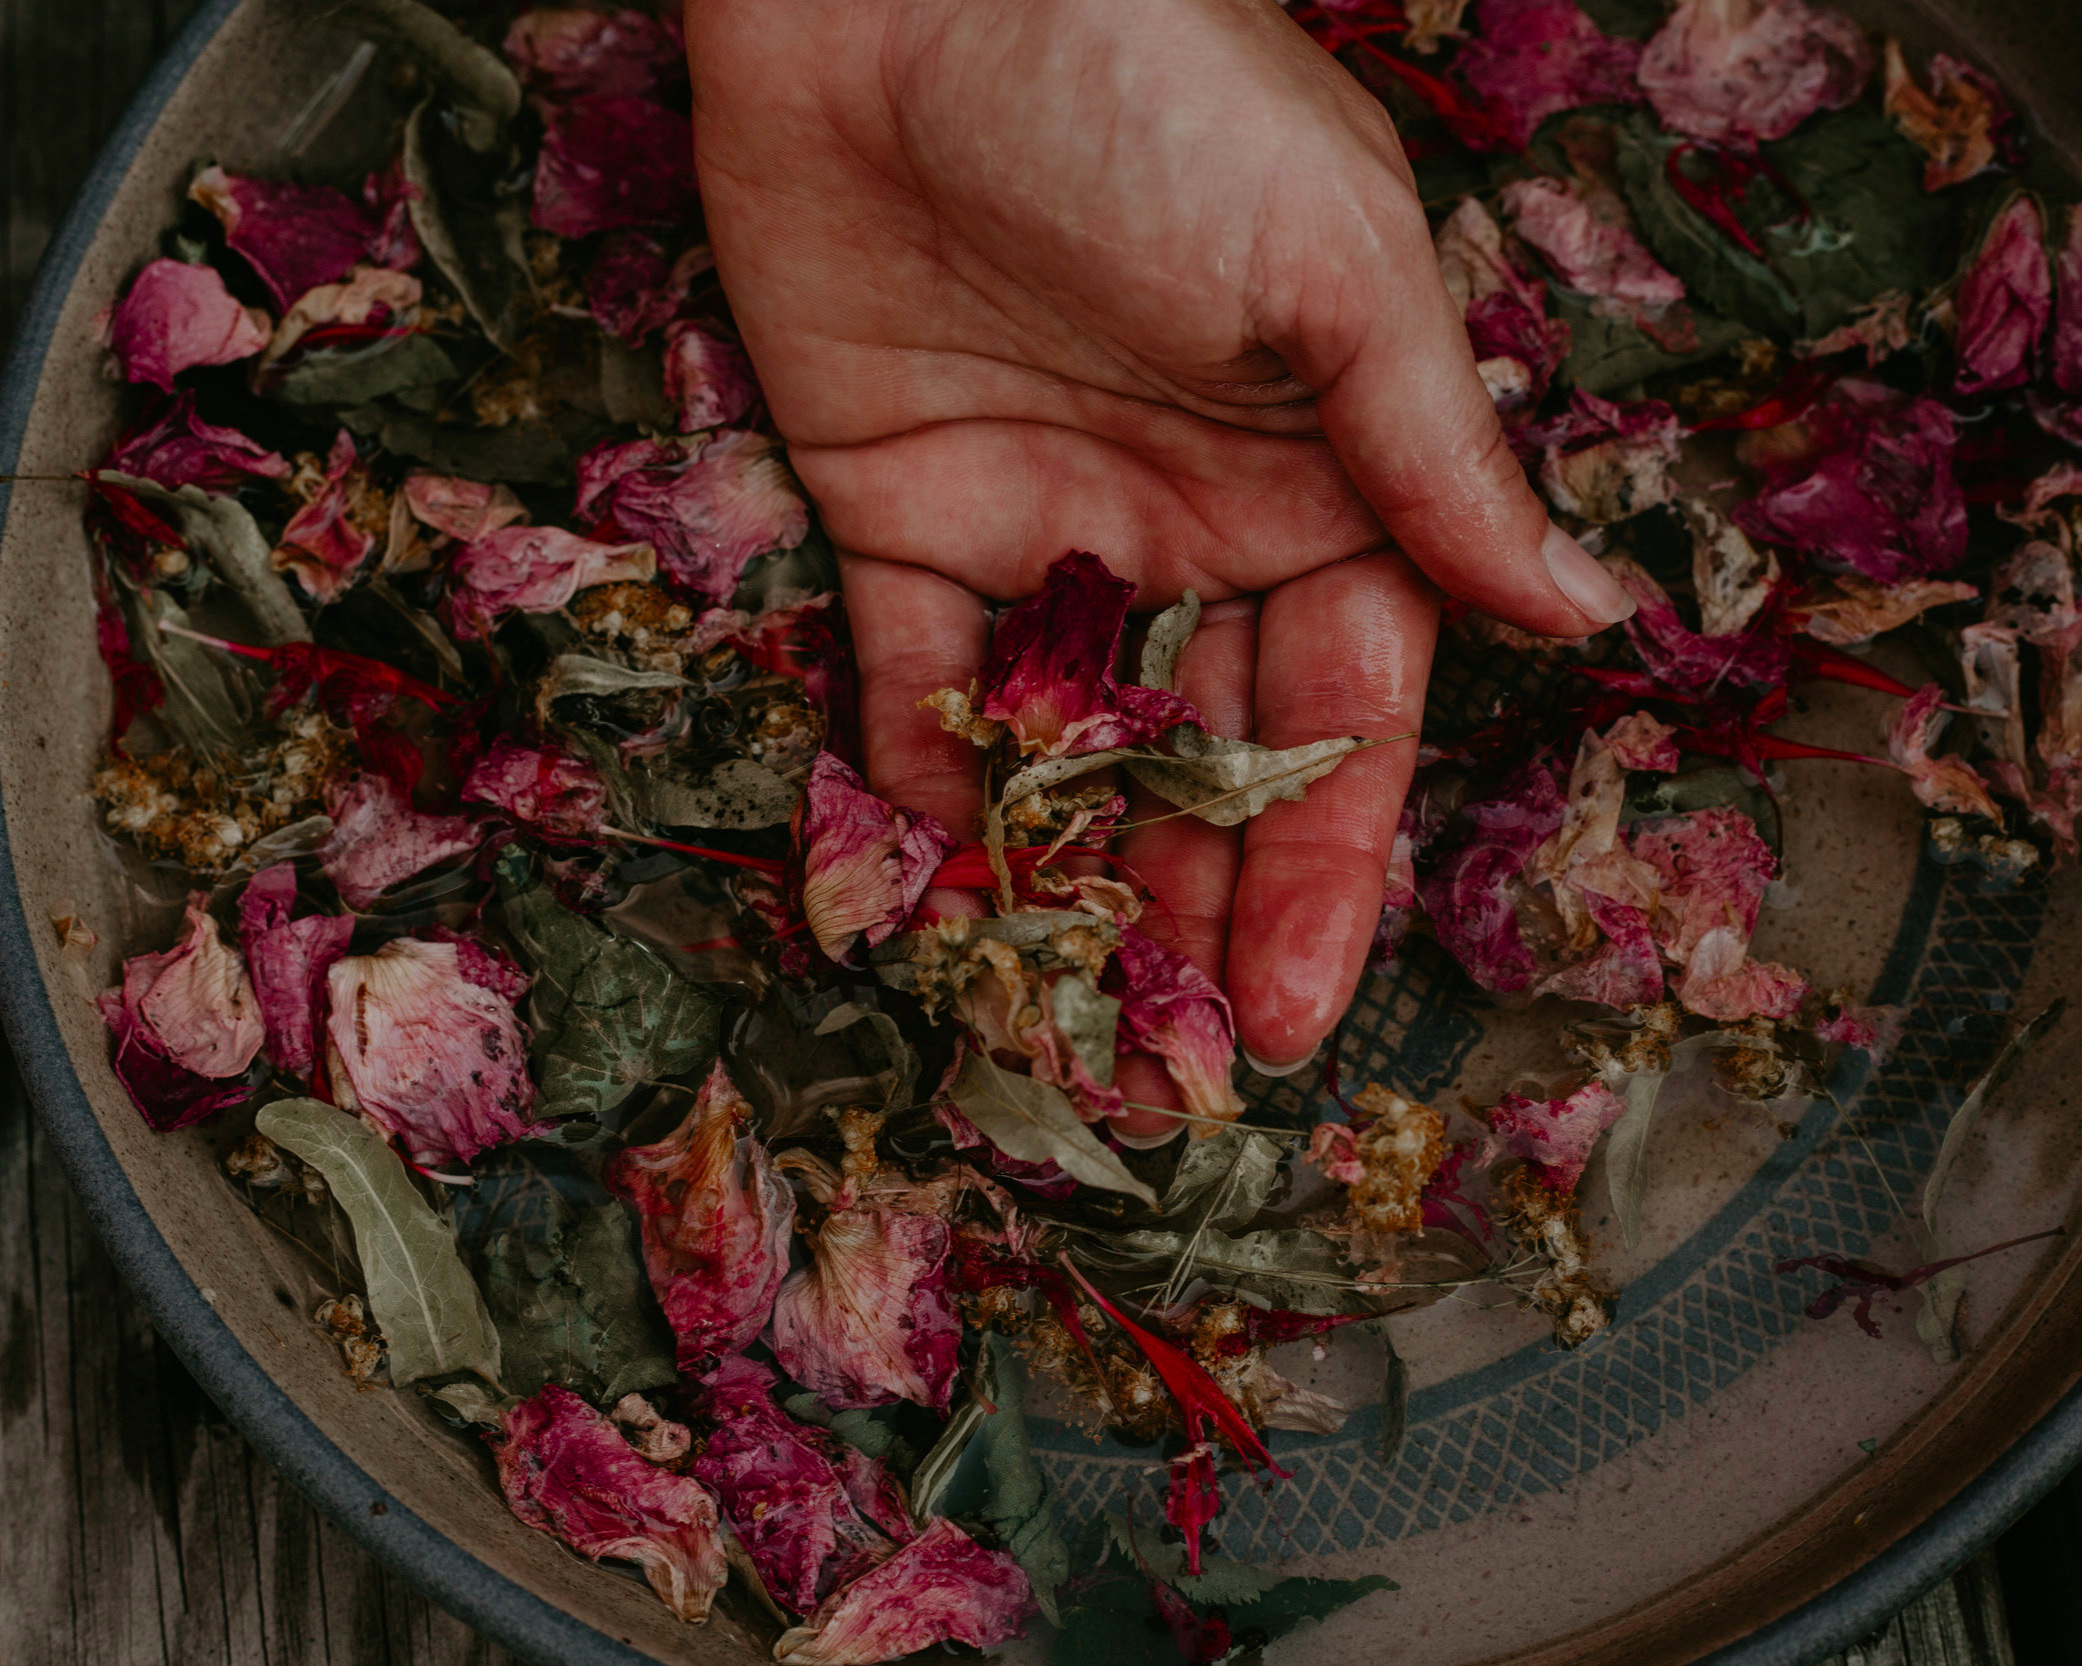 Herbal Spa - Personalized spa for face, hands and feet with hand made herbal products. Retreat, workshops, private groups, planned events.